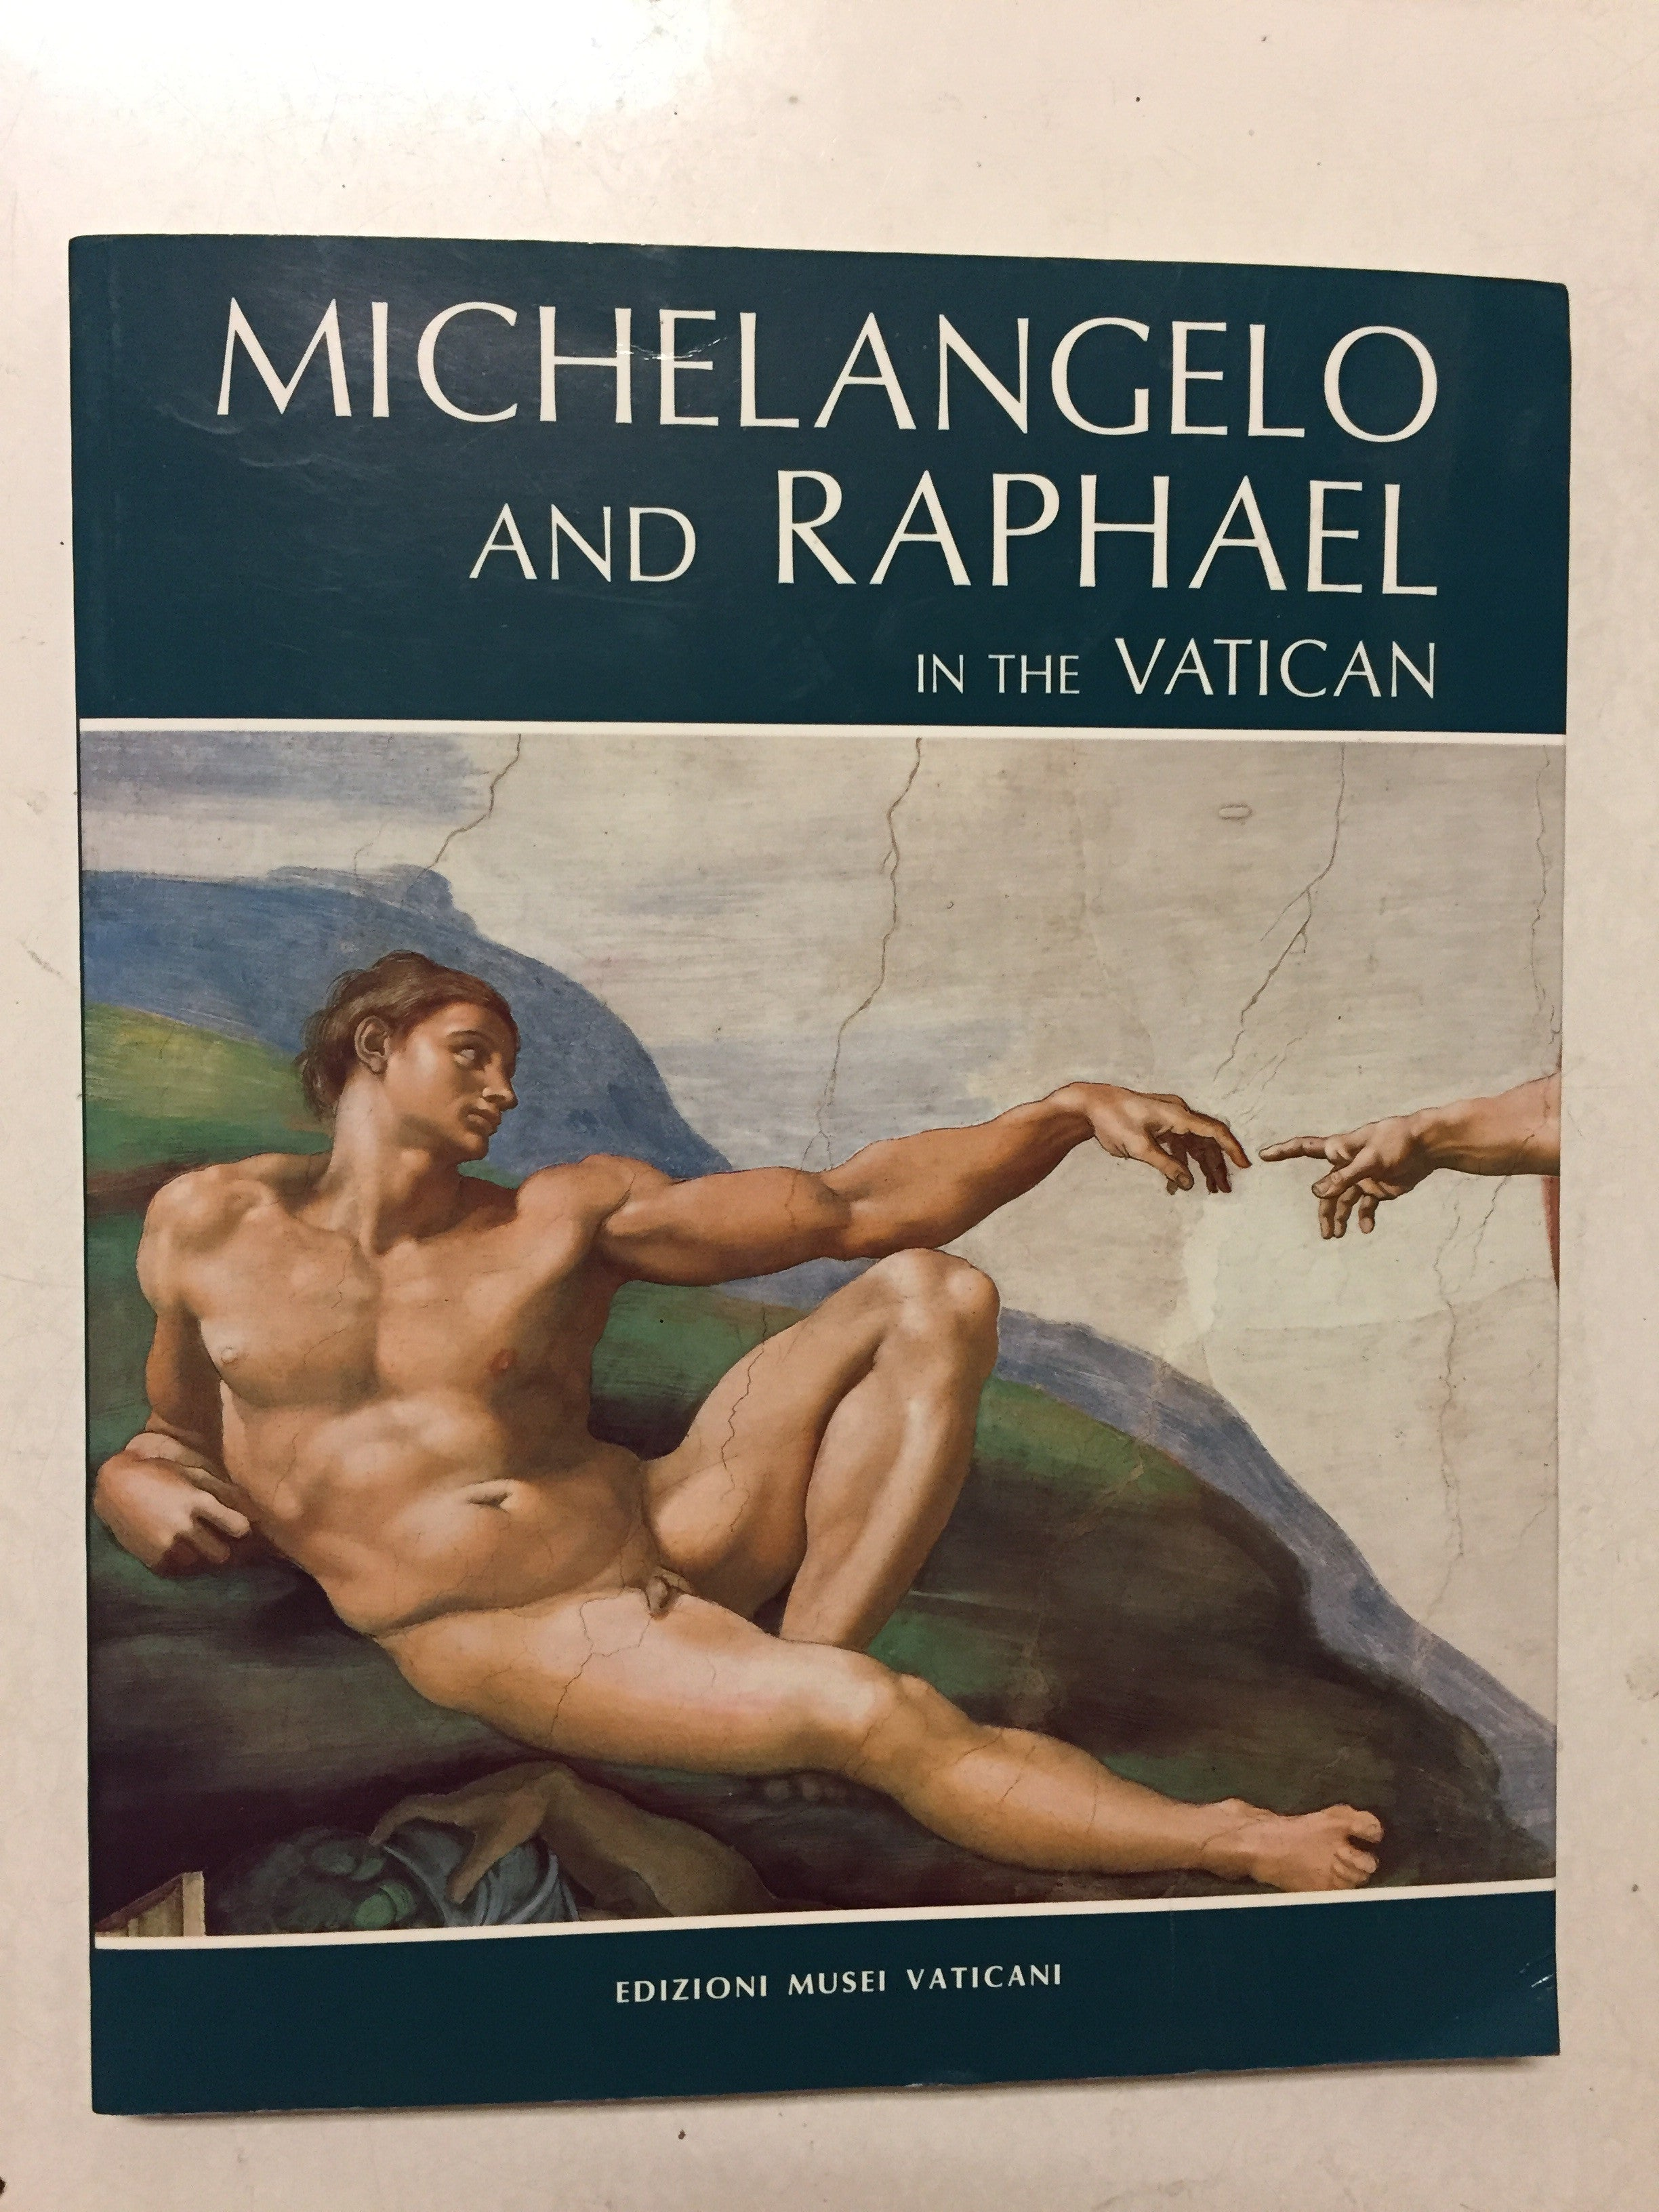 Michelangelo and Raphael in the Vatican - Slickcatbooks